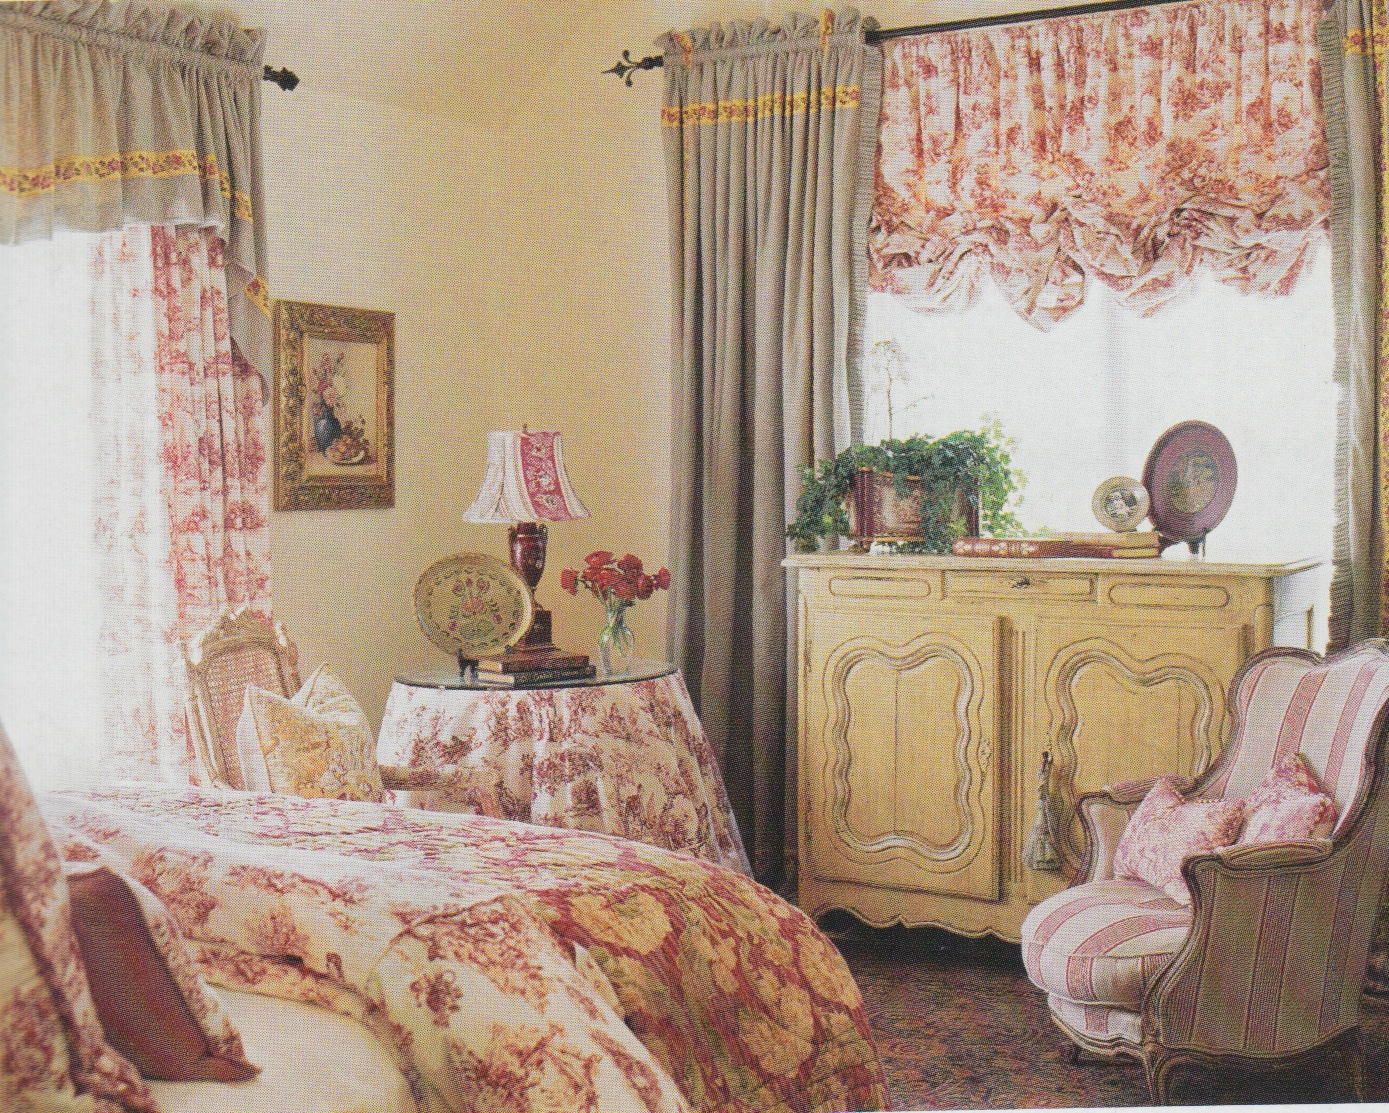 Hydrangea Hill Cottage: French Country